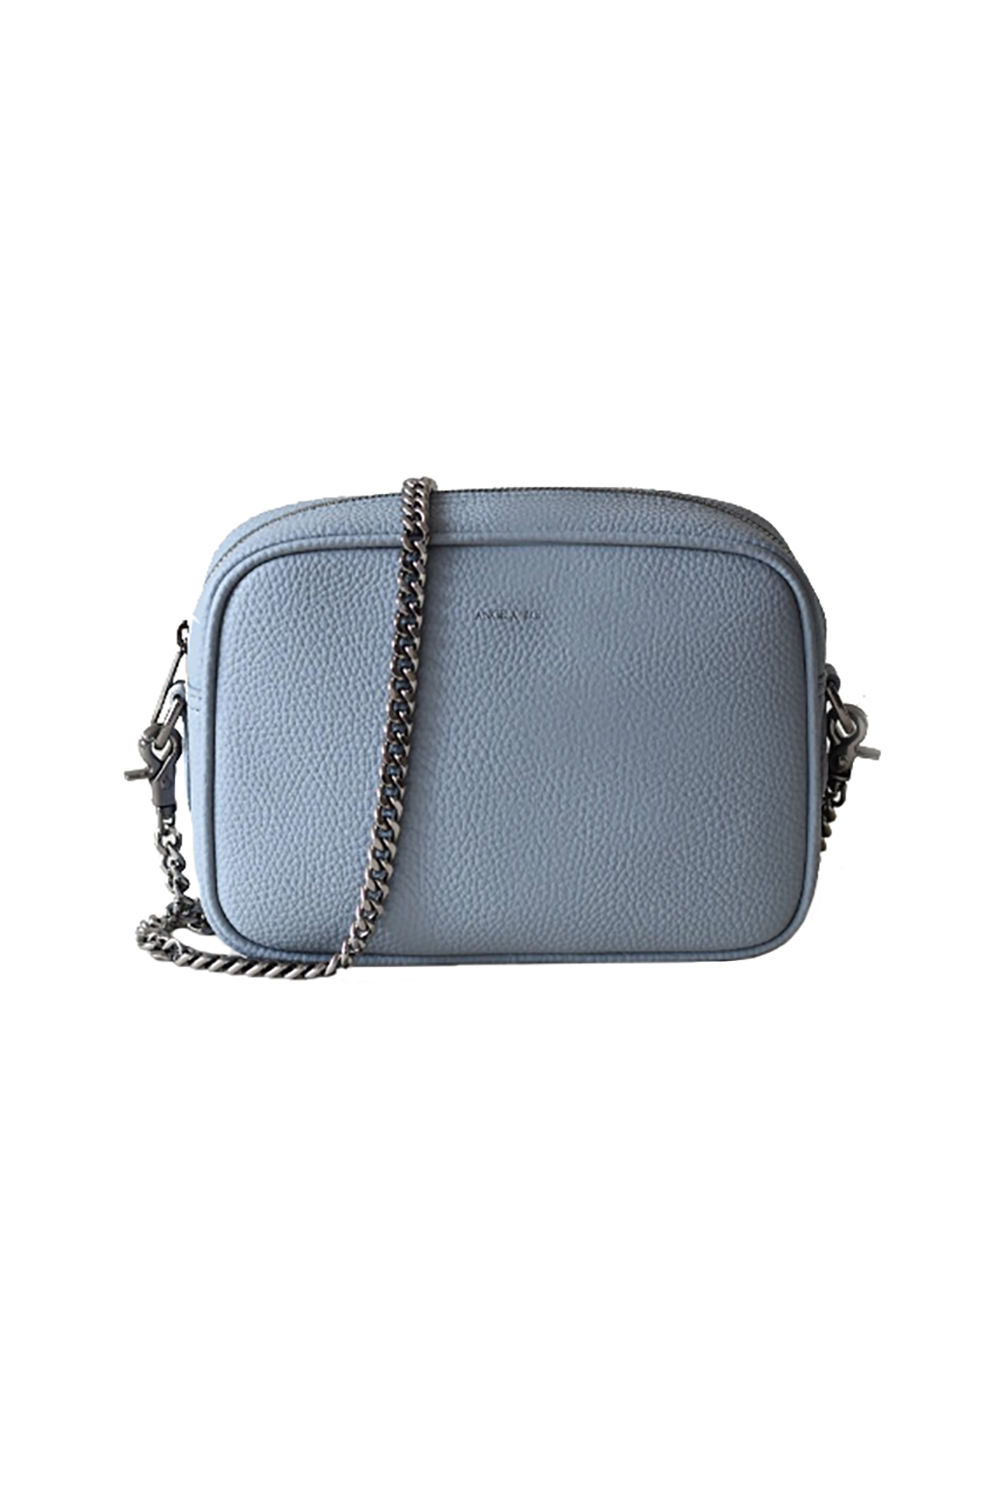 A Vegan Leather Mini Crossbody Angela Roi $195.00 SHOP IT Her girlfriends will be asking her if she stole this vegan leather crossbody from your closet. It's versatile enough for day or night, and she'll be obsessed with how soft it is.